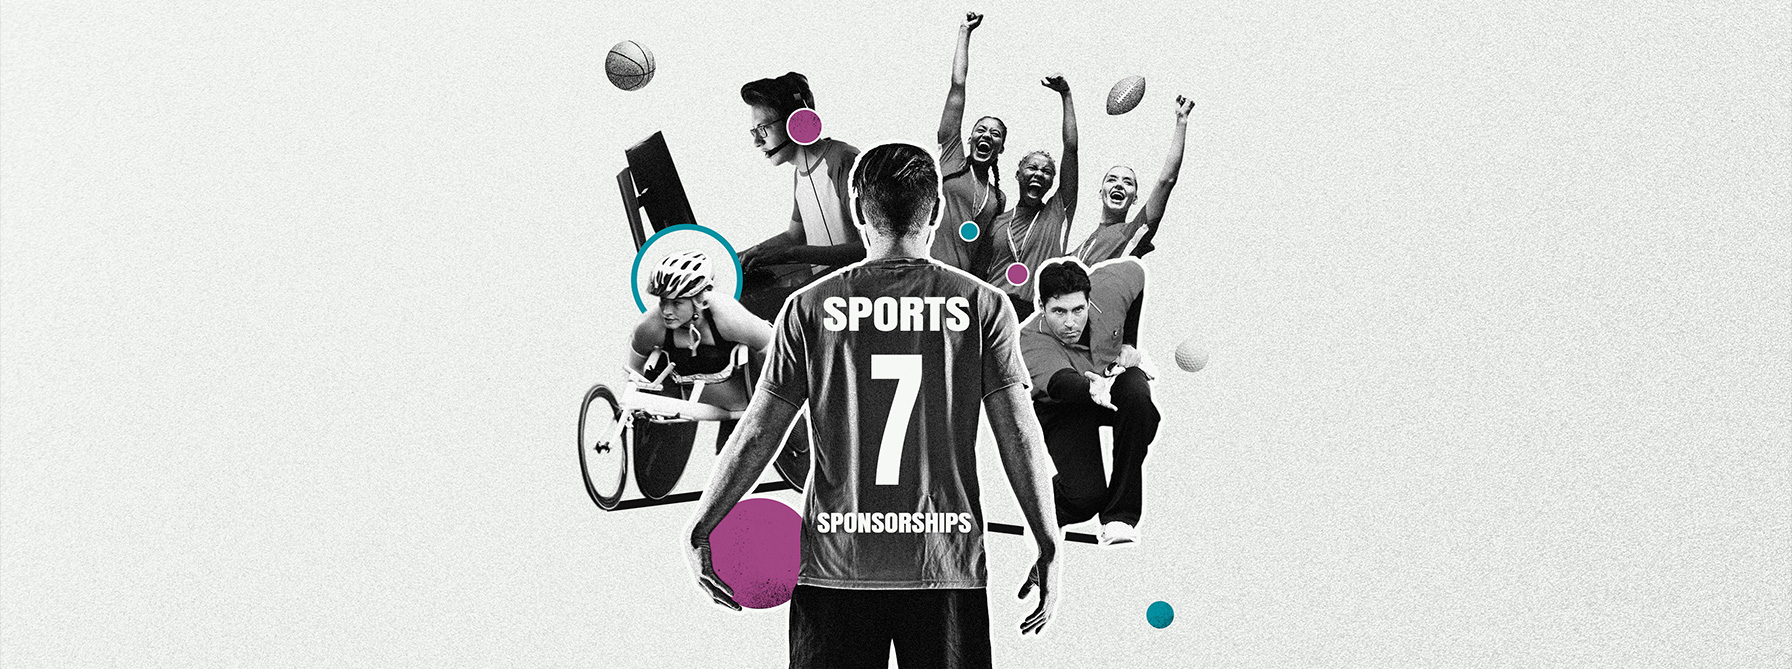 Sports sponsorships: how finance brands can play the game header